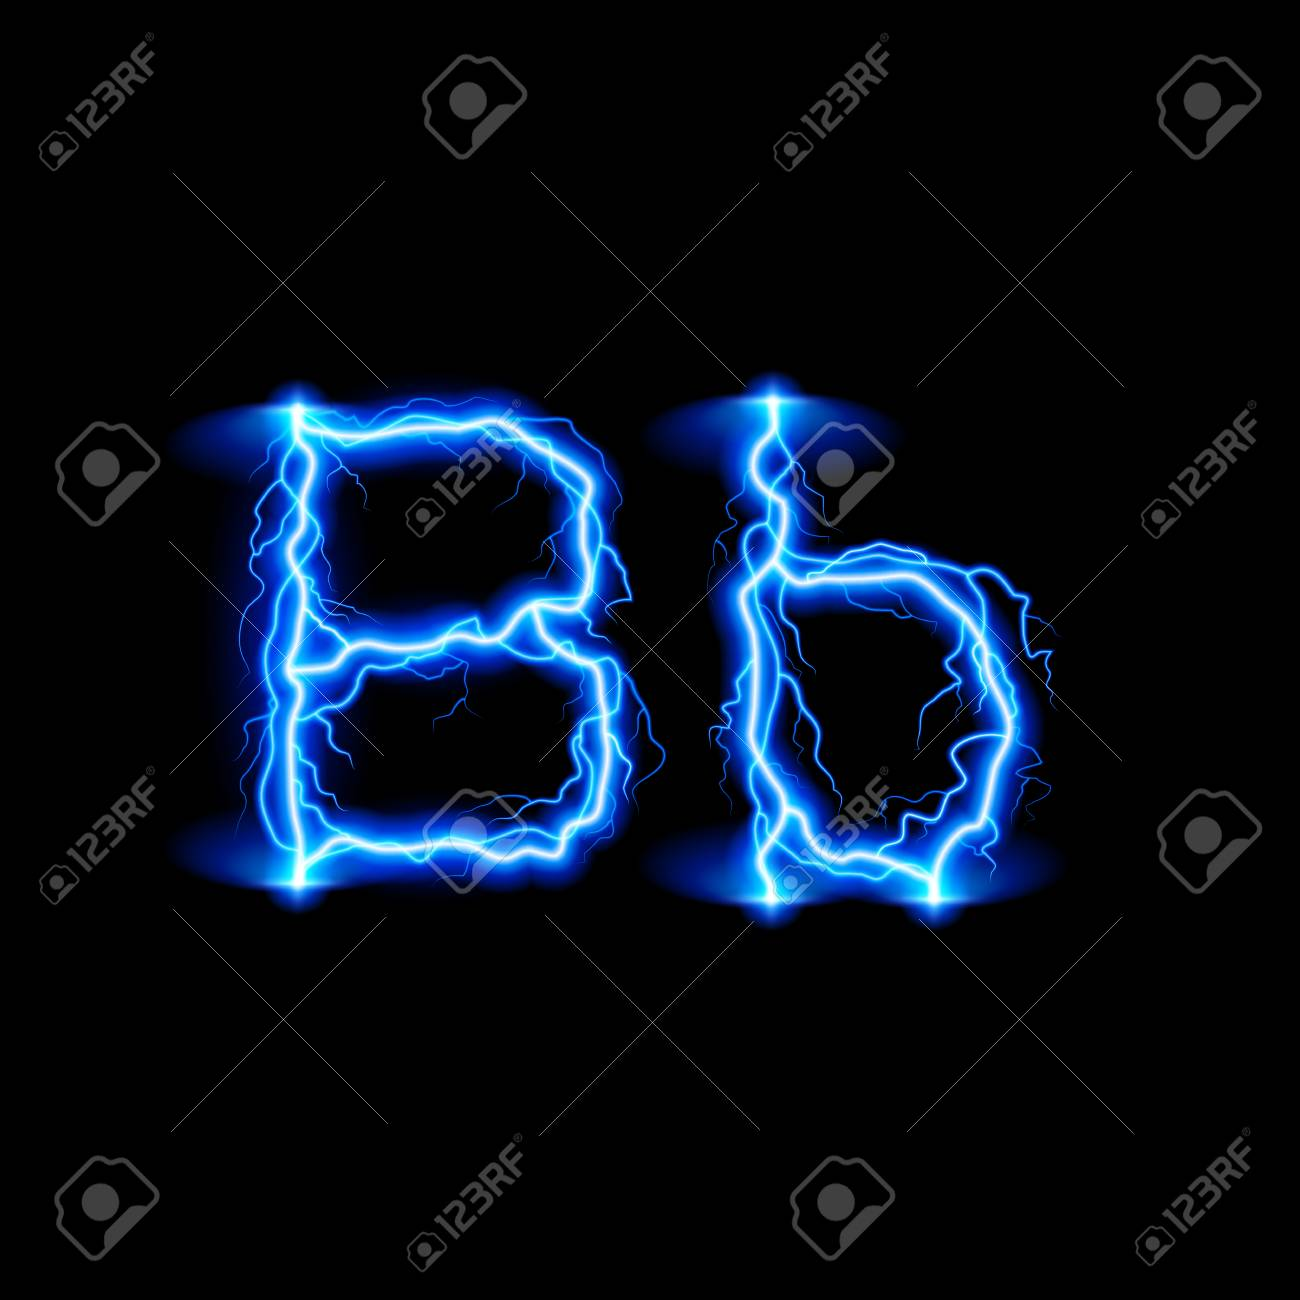 Uppercase And Lowercase Letters B In Lighting Style Royalty Free